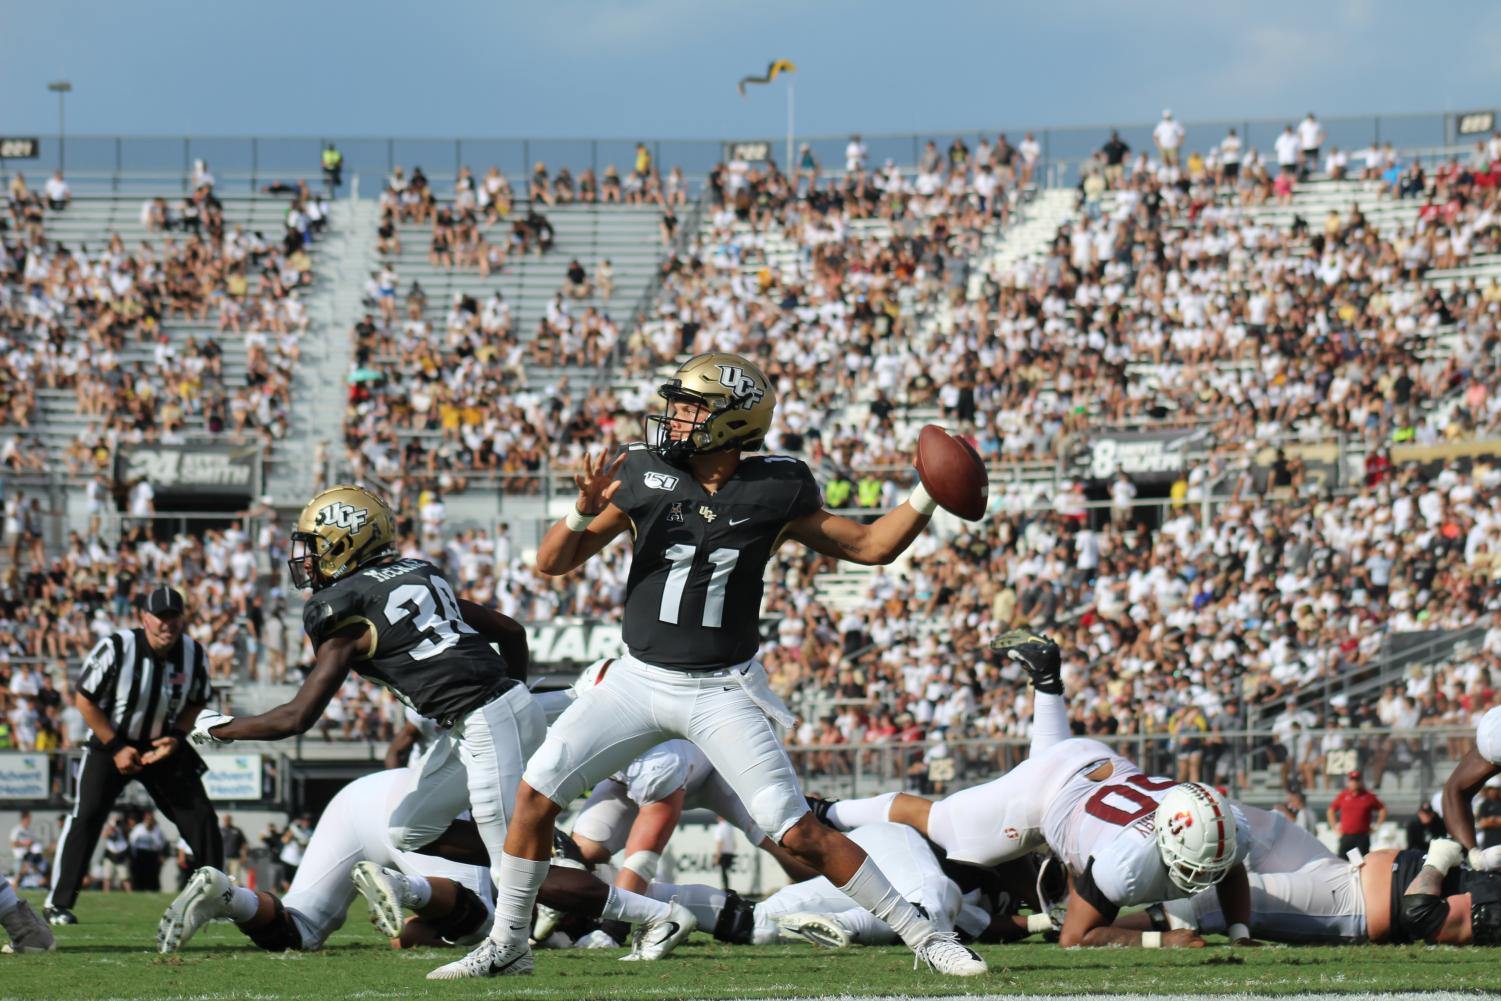 True Freshman Quarterback Dillon Gabriel threw for 347 yards and four touchdowns for the UCF Knights.